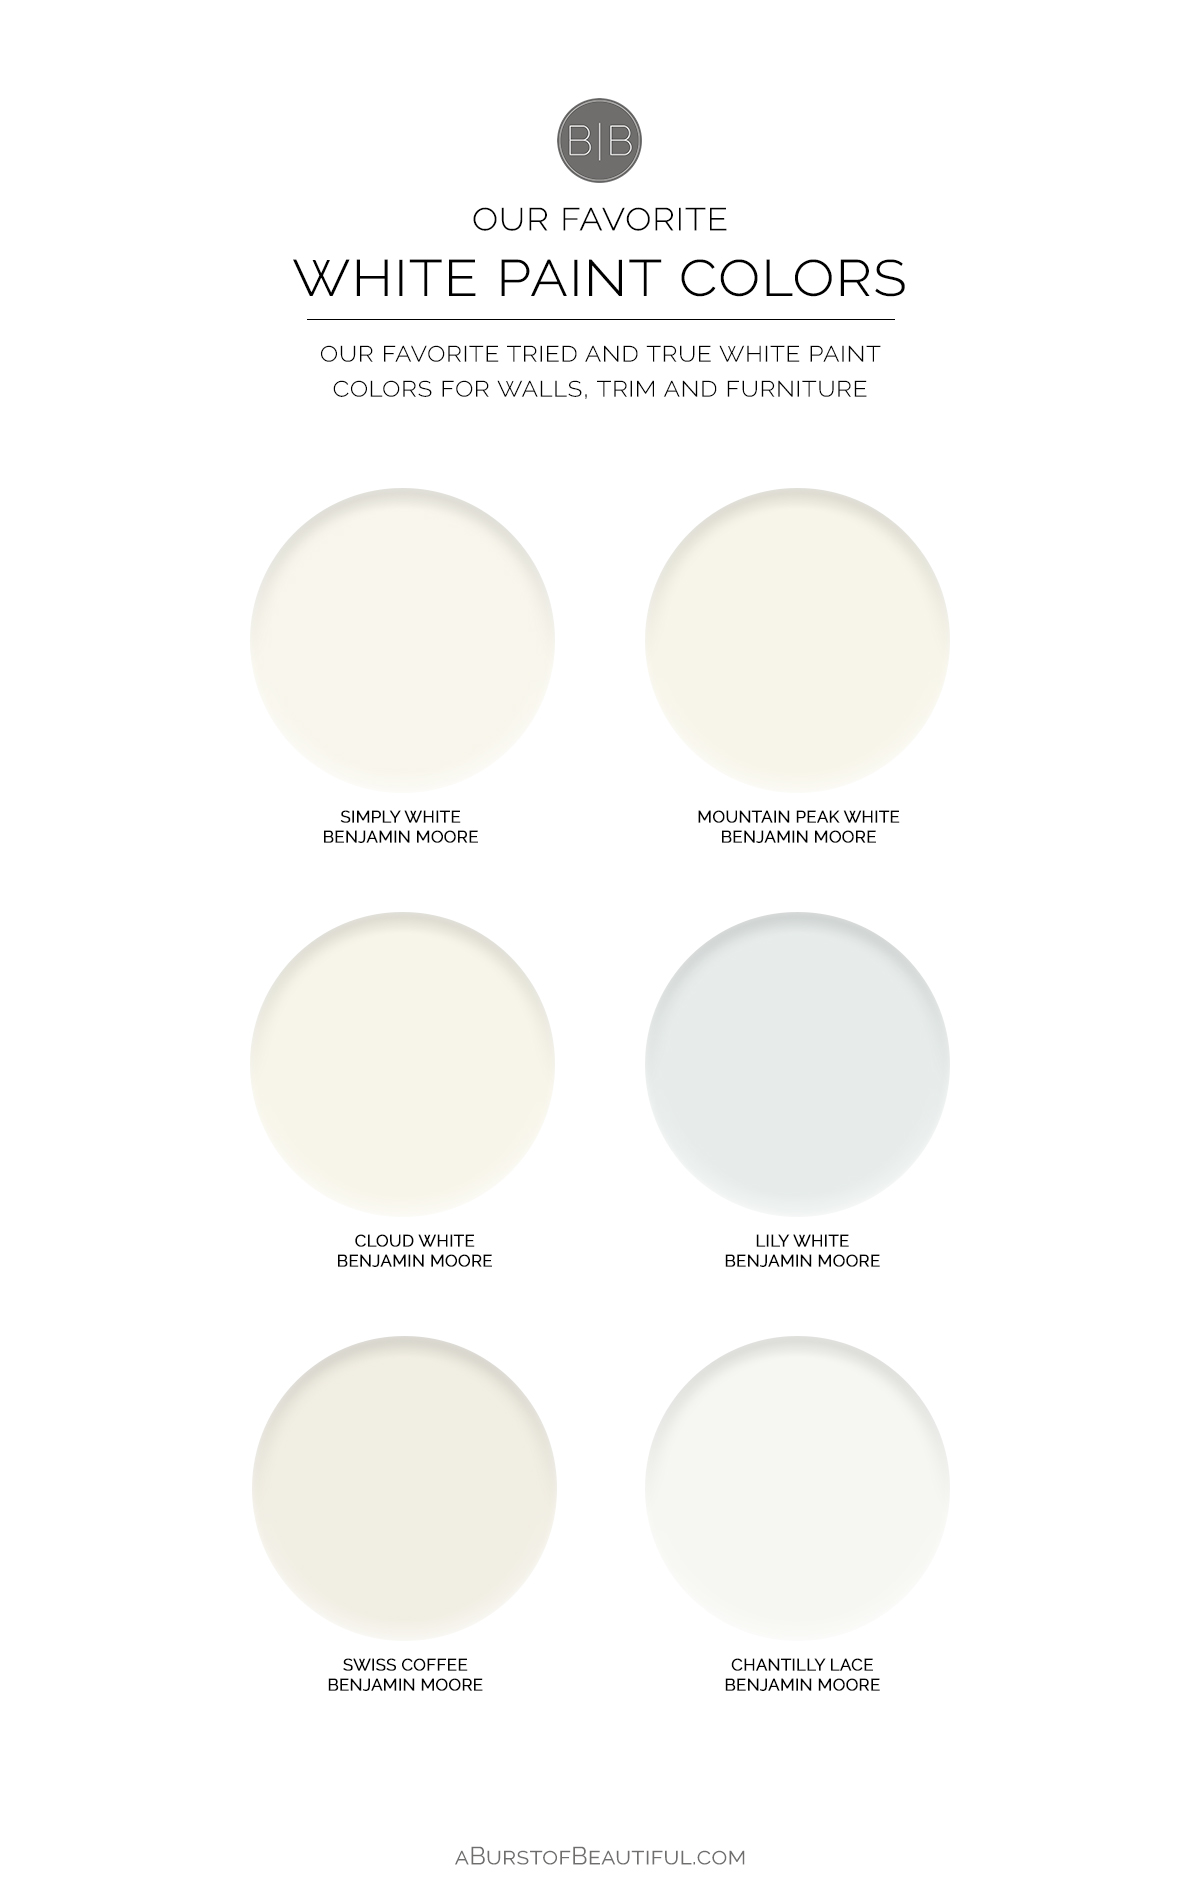 The Best White Paint Colors - A Burst of Beautiful